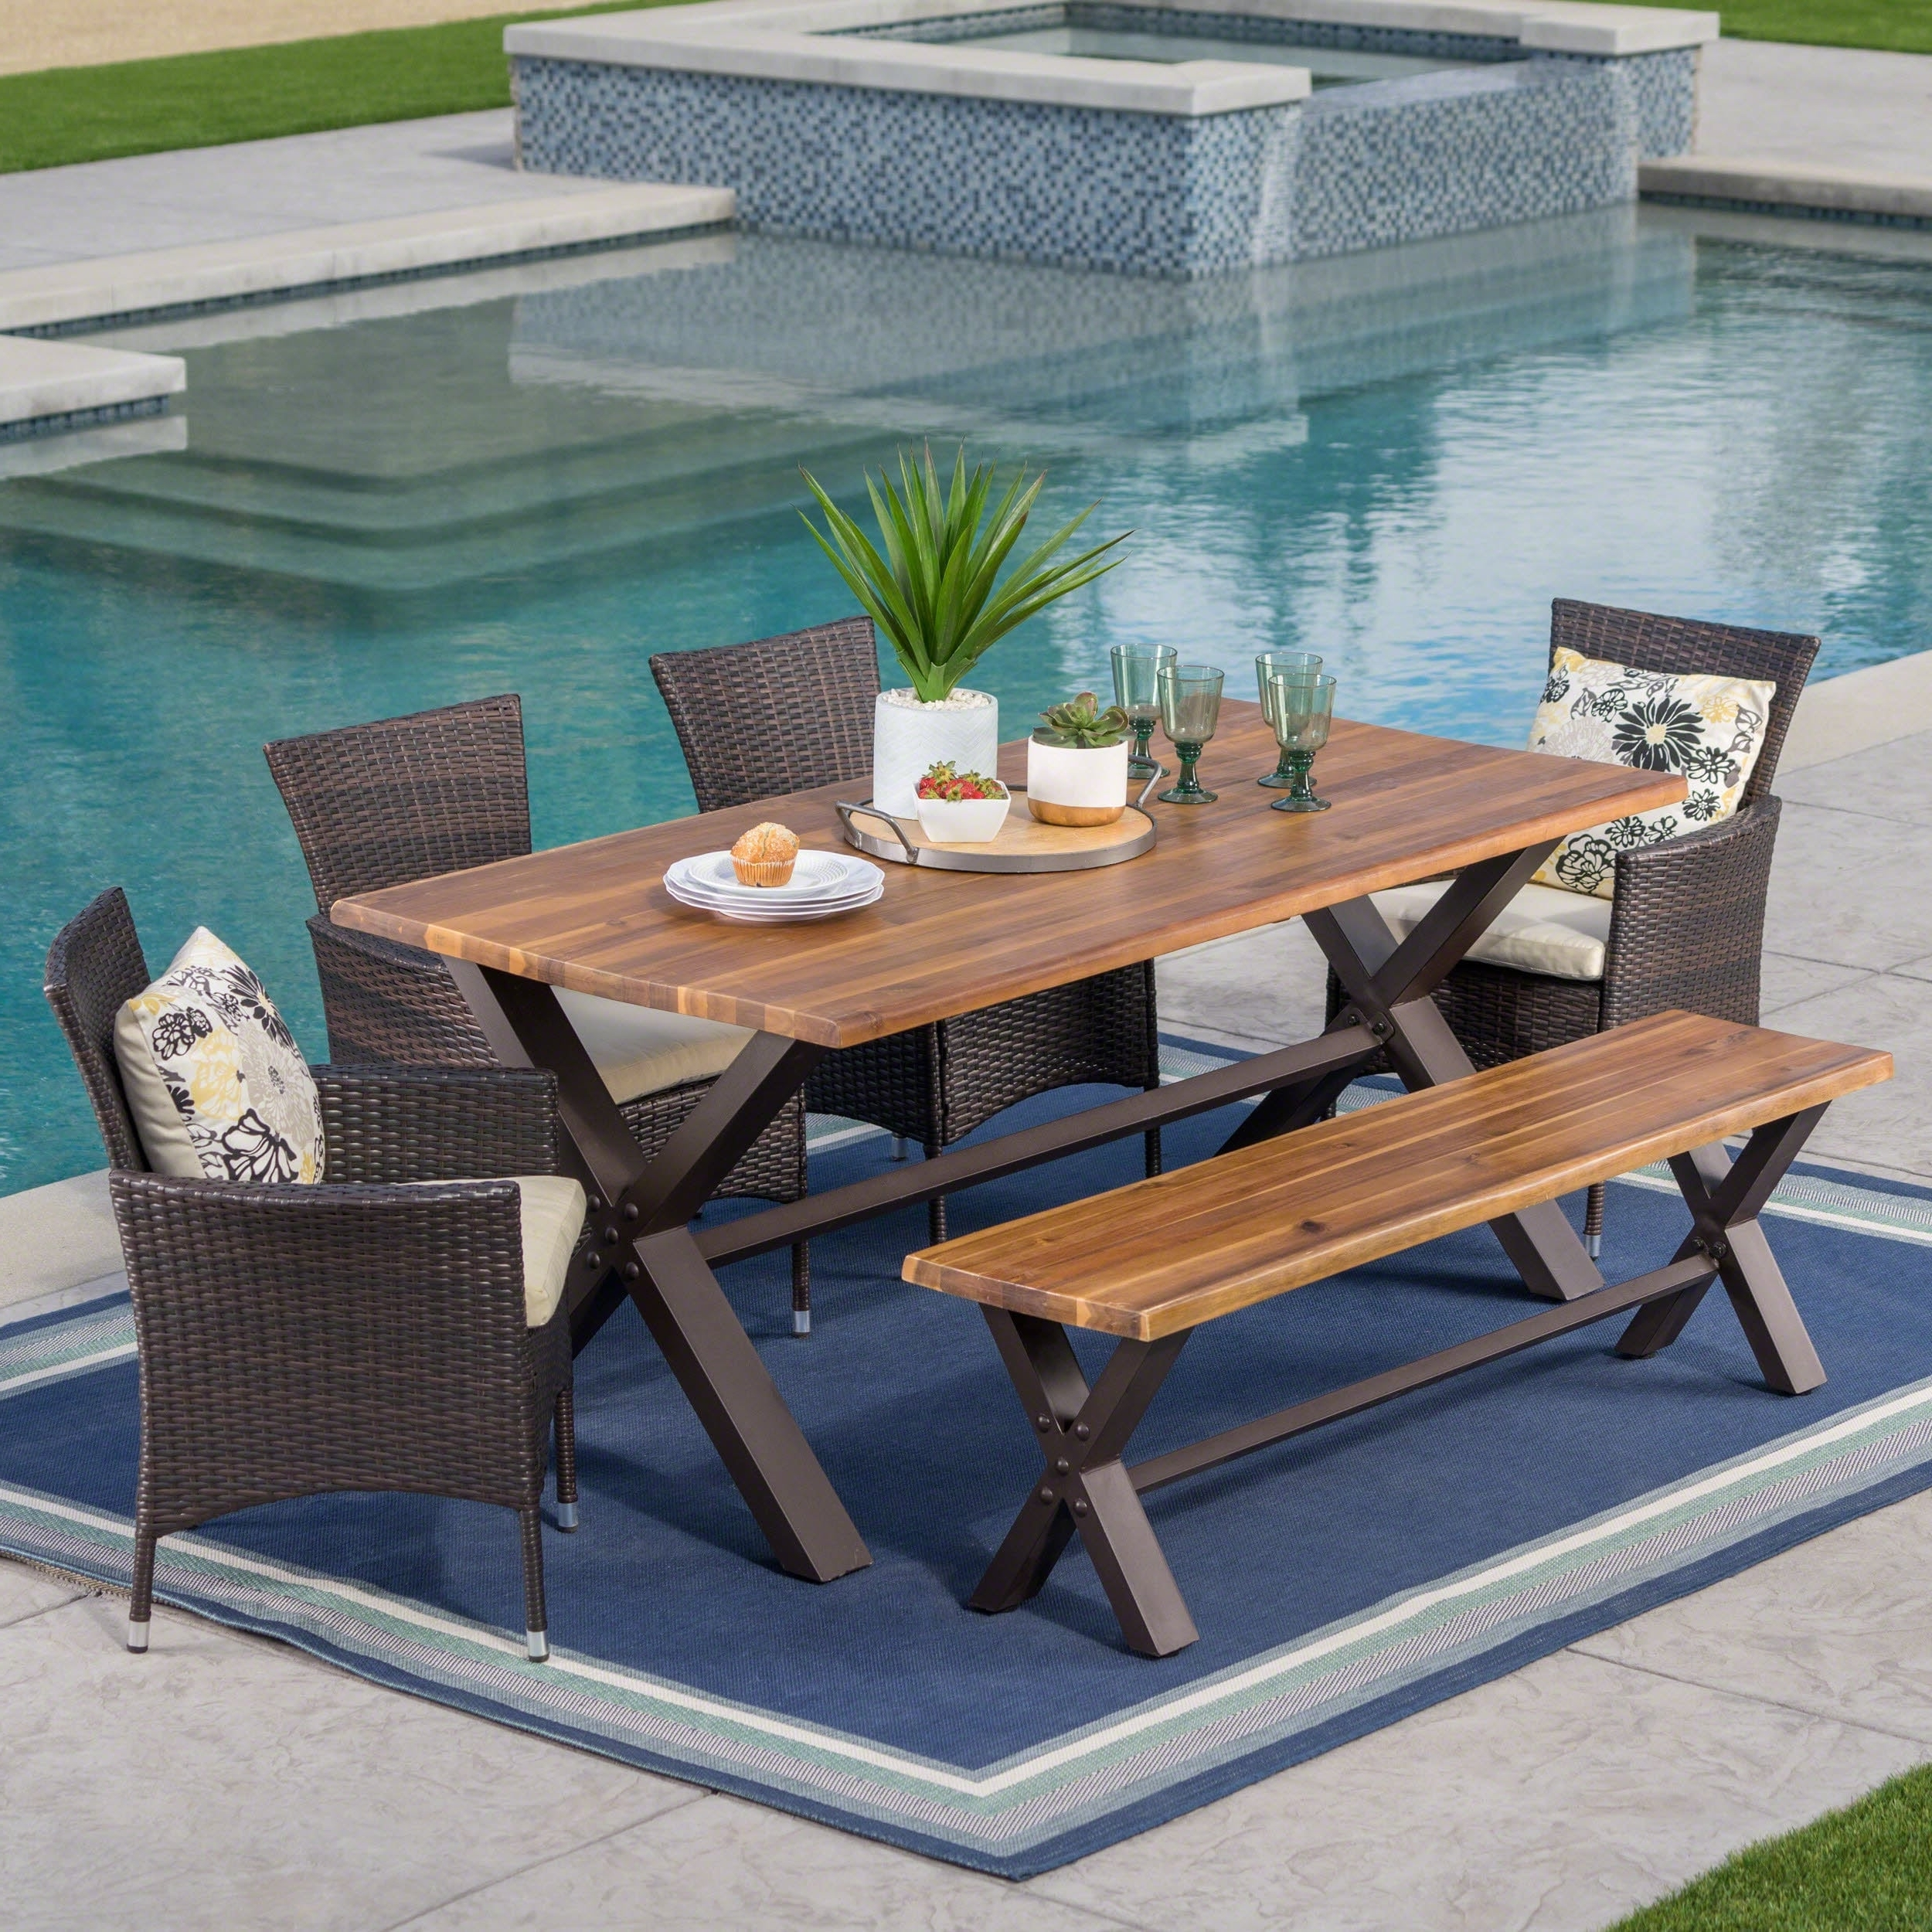 Patio Conversation Sets With Dining Table Within Widely Used Buy Outdoor Dining Sets Online At Overstock (View 14 of 15)